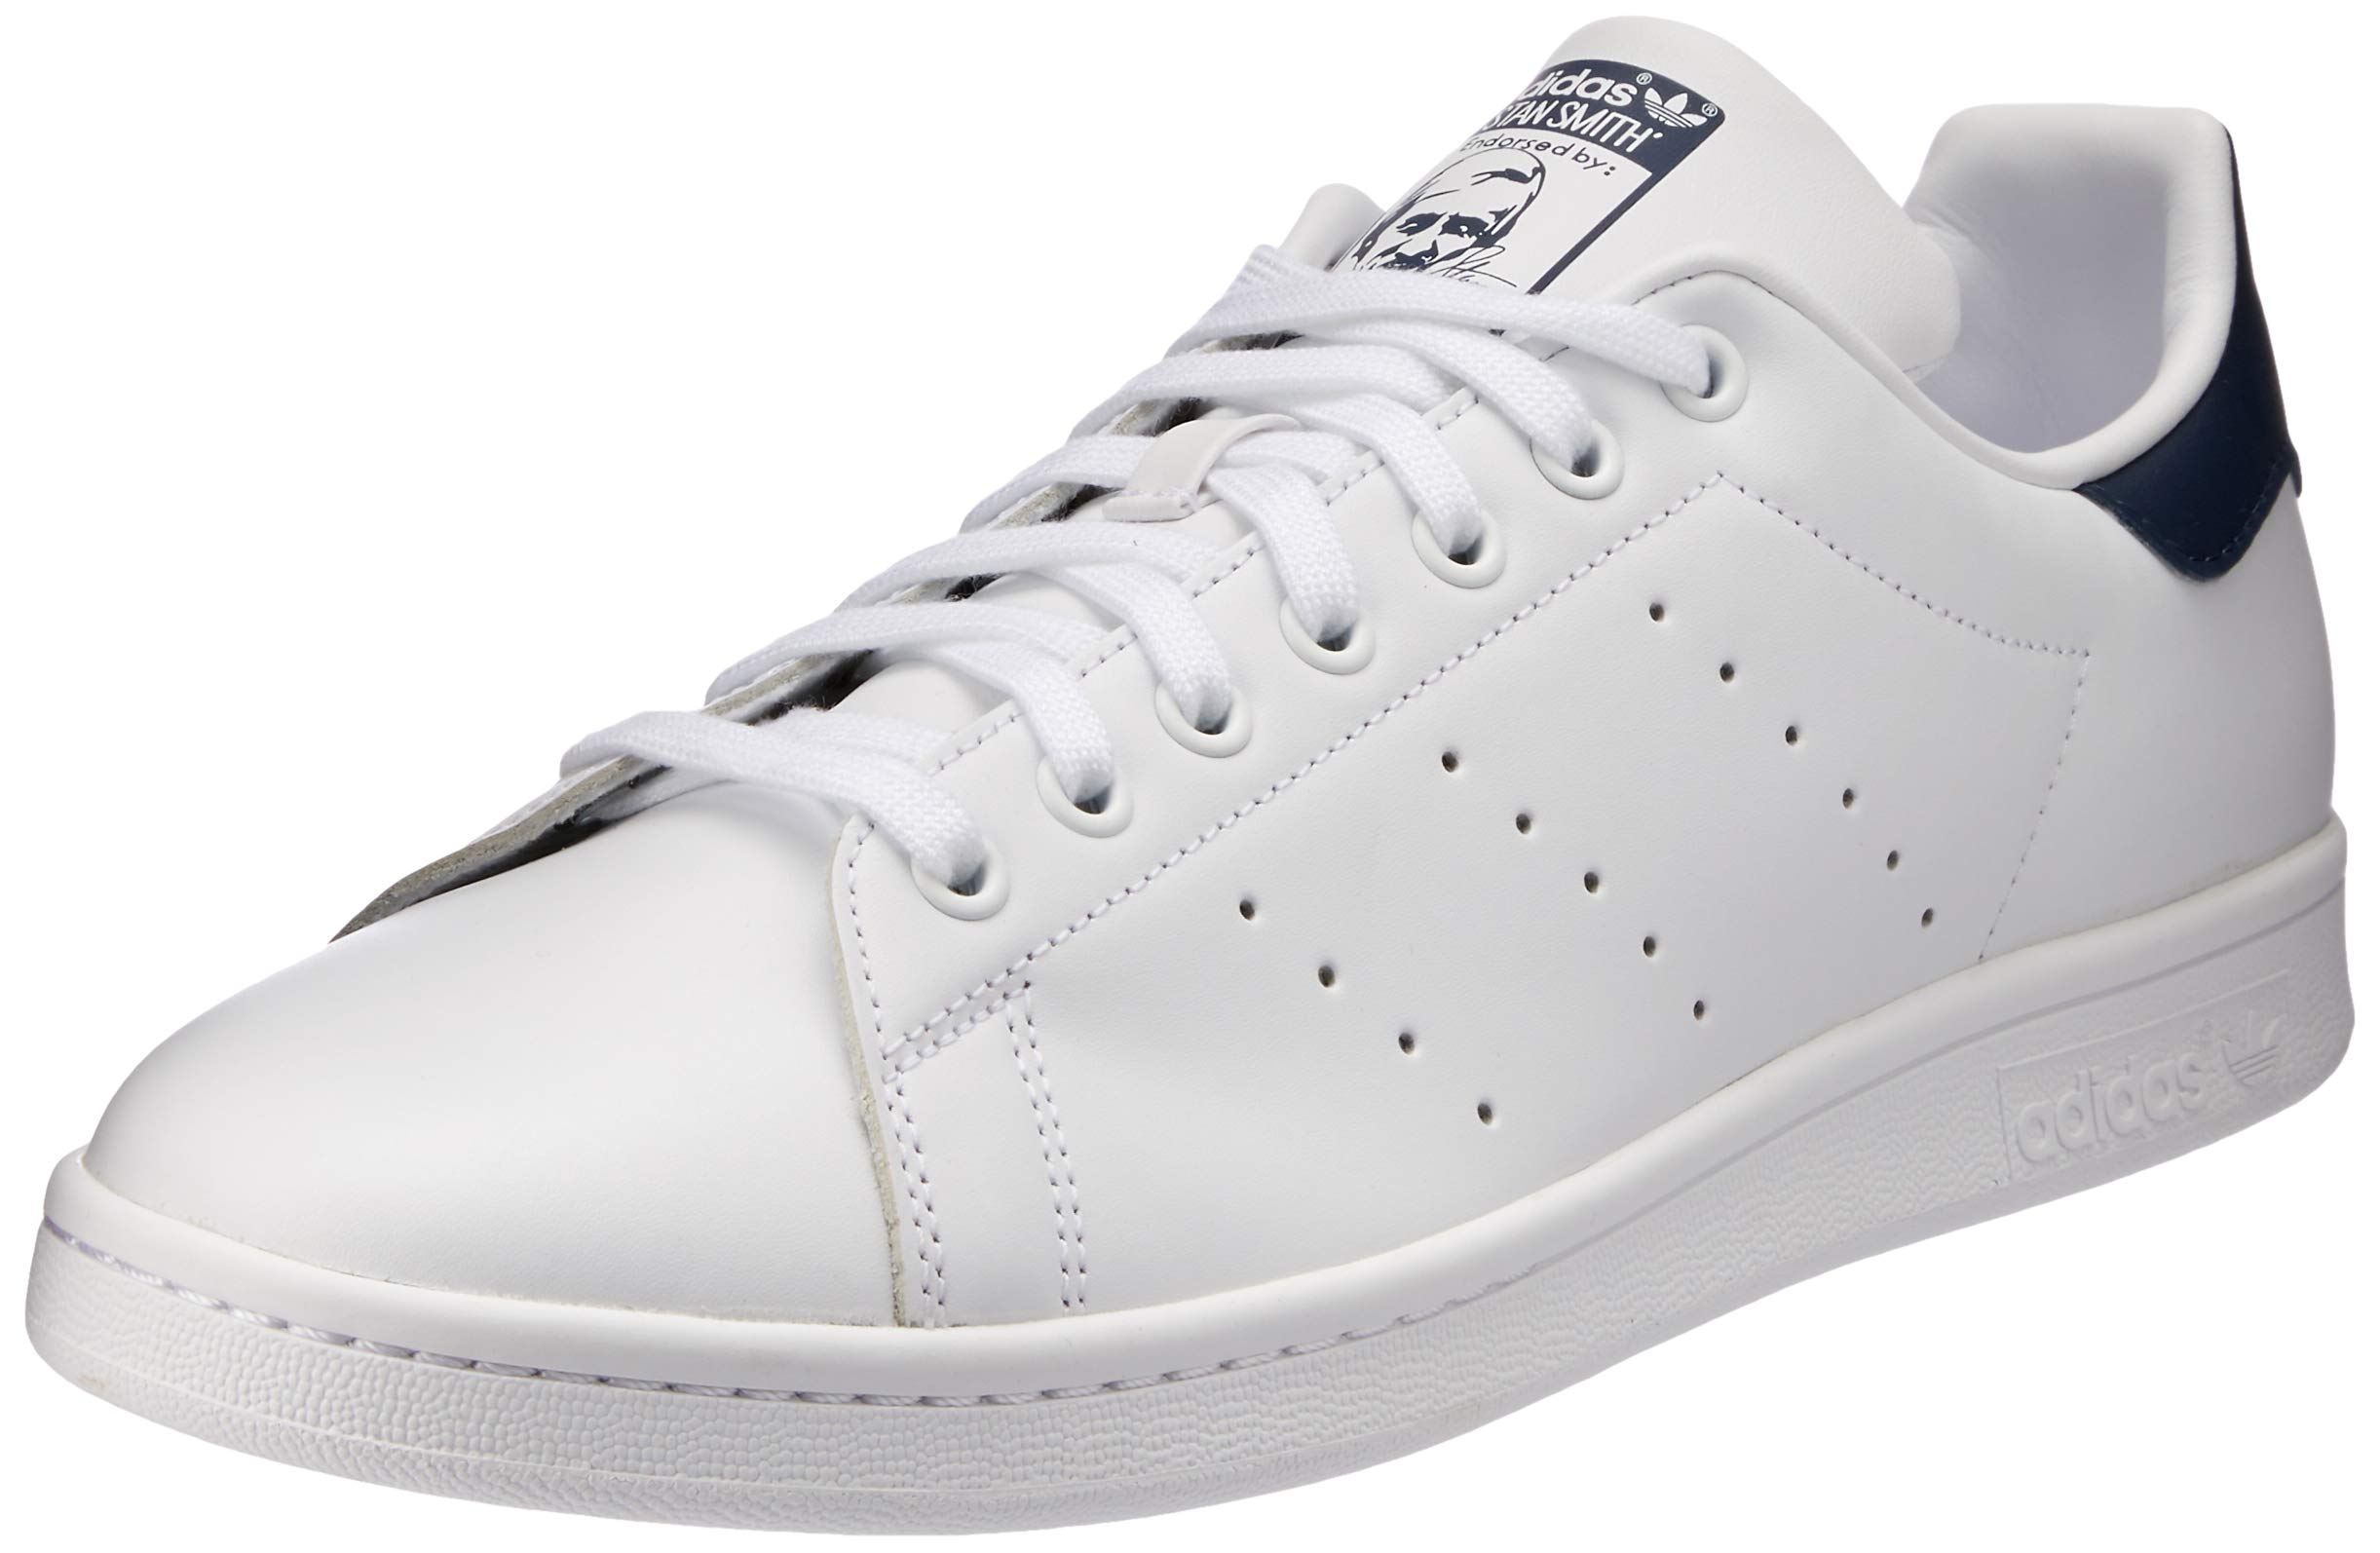 detailed look 4c873 a49ff adidas Stan Smith Vulc Running White/New Navy Skate Shoes-11